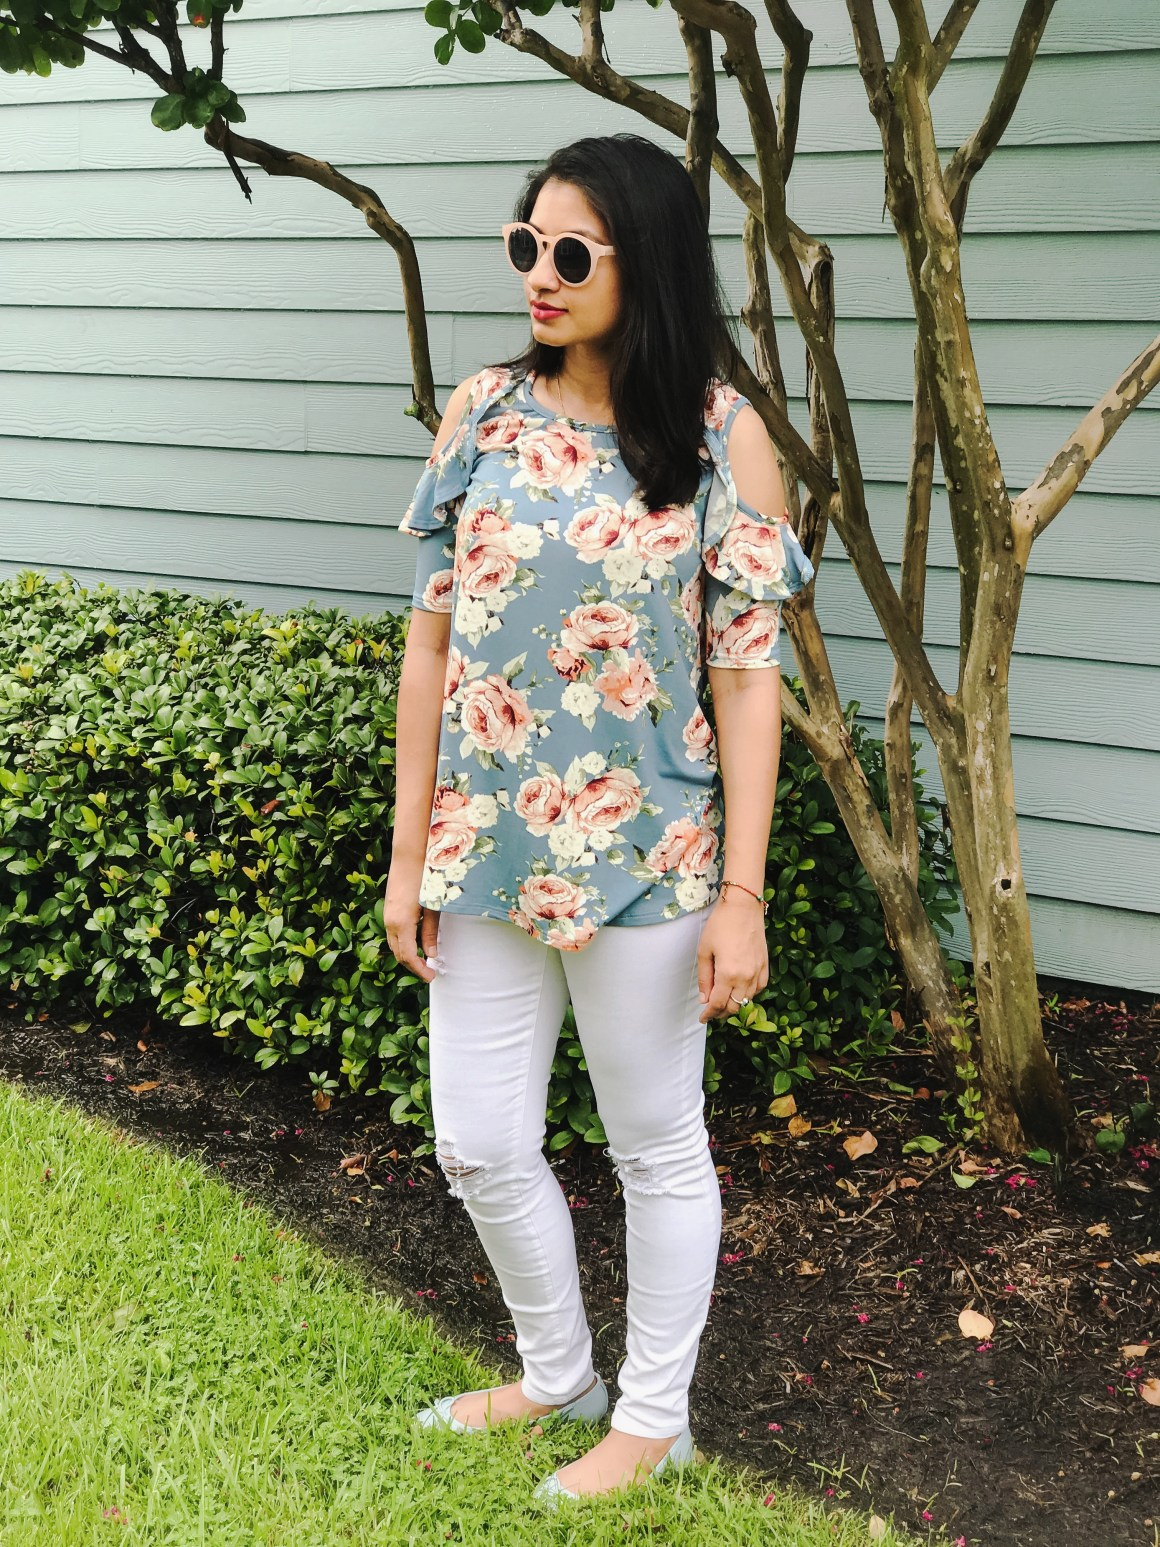 Center of Attention - Floral top & white jeans